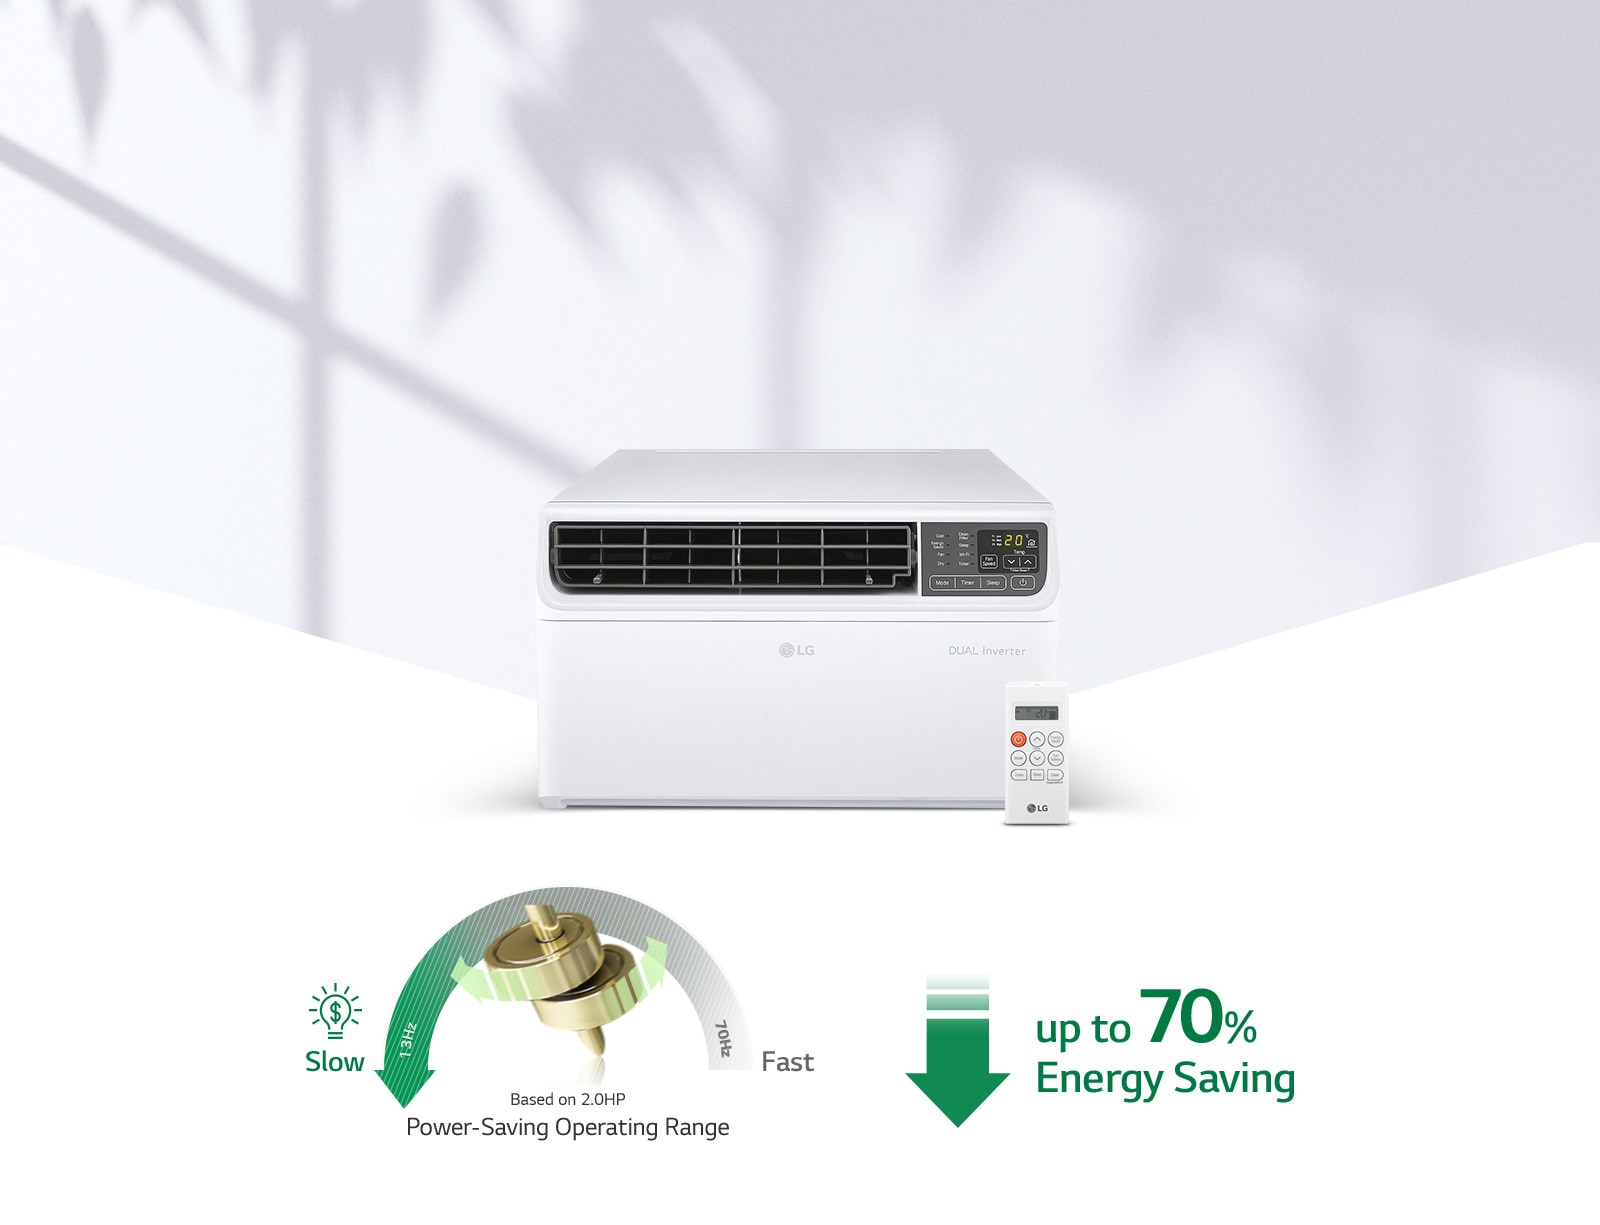 Efficient Energy Saving1